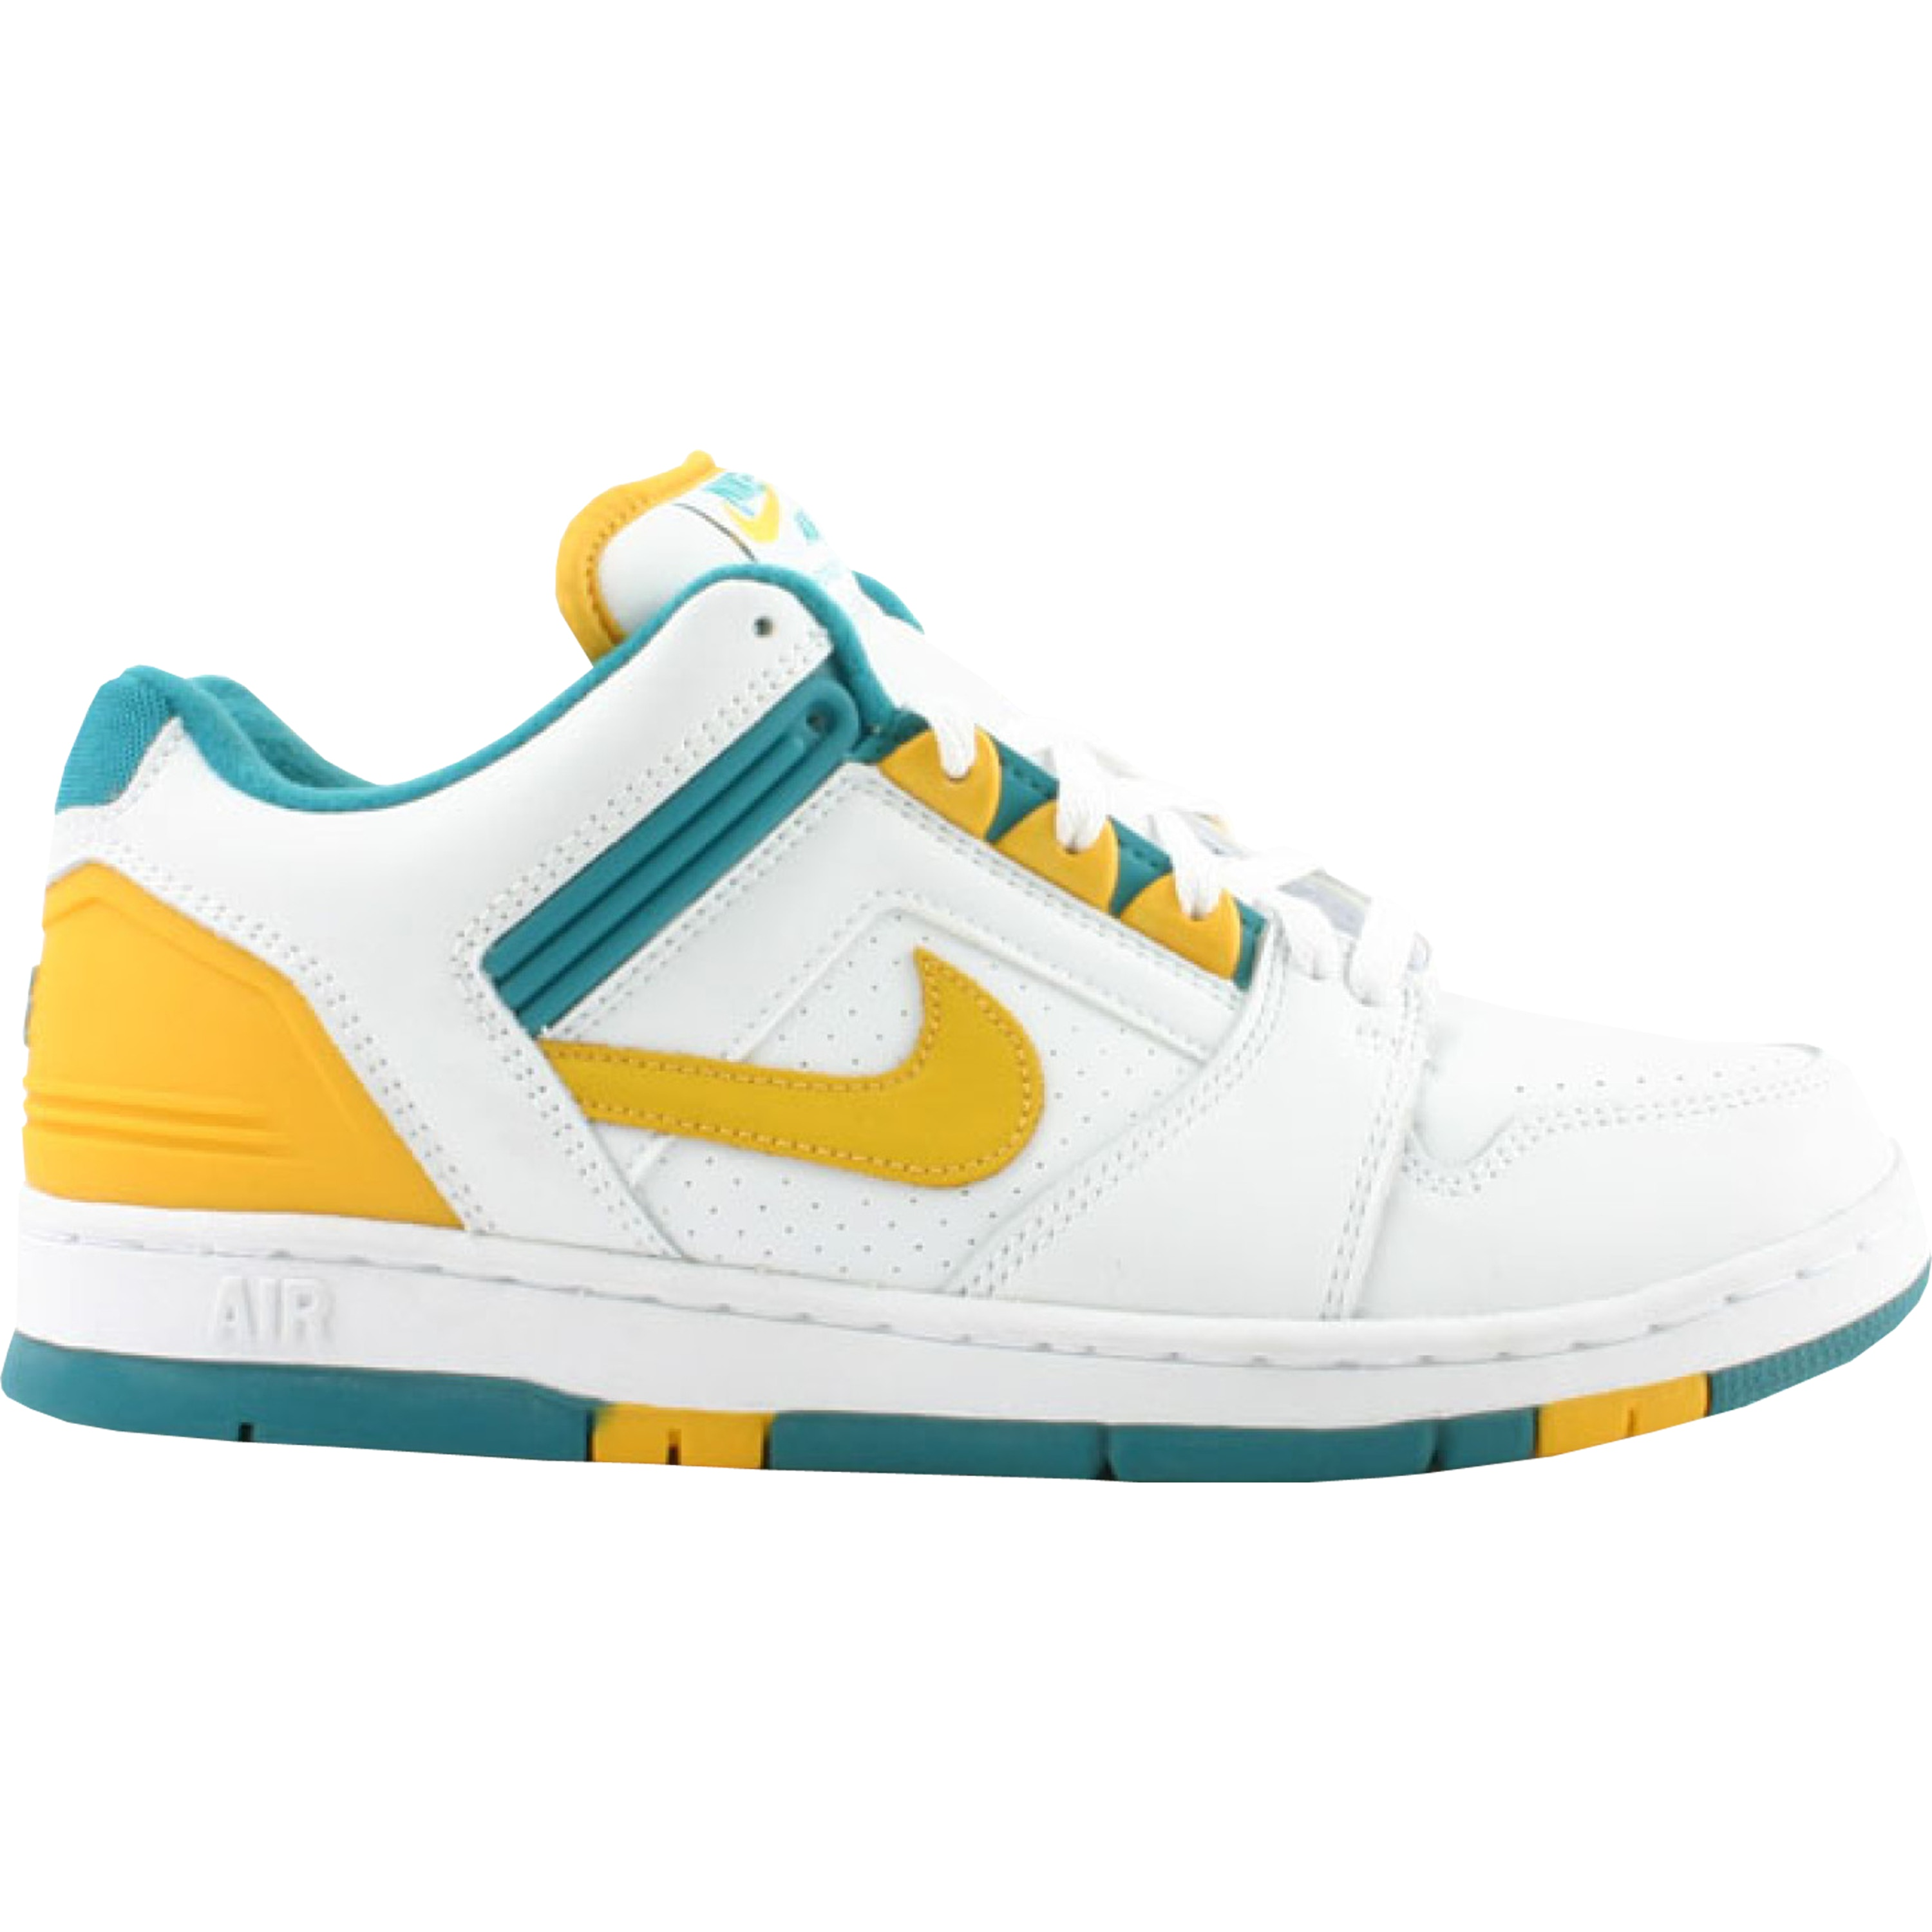 Nike Air Force 2 Low Mad Hectic (306140-171)